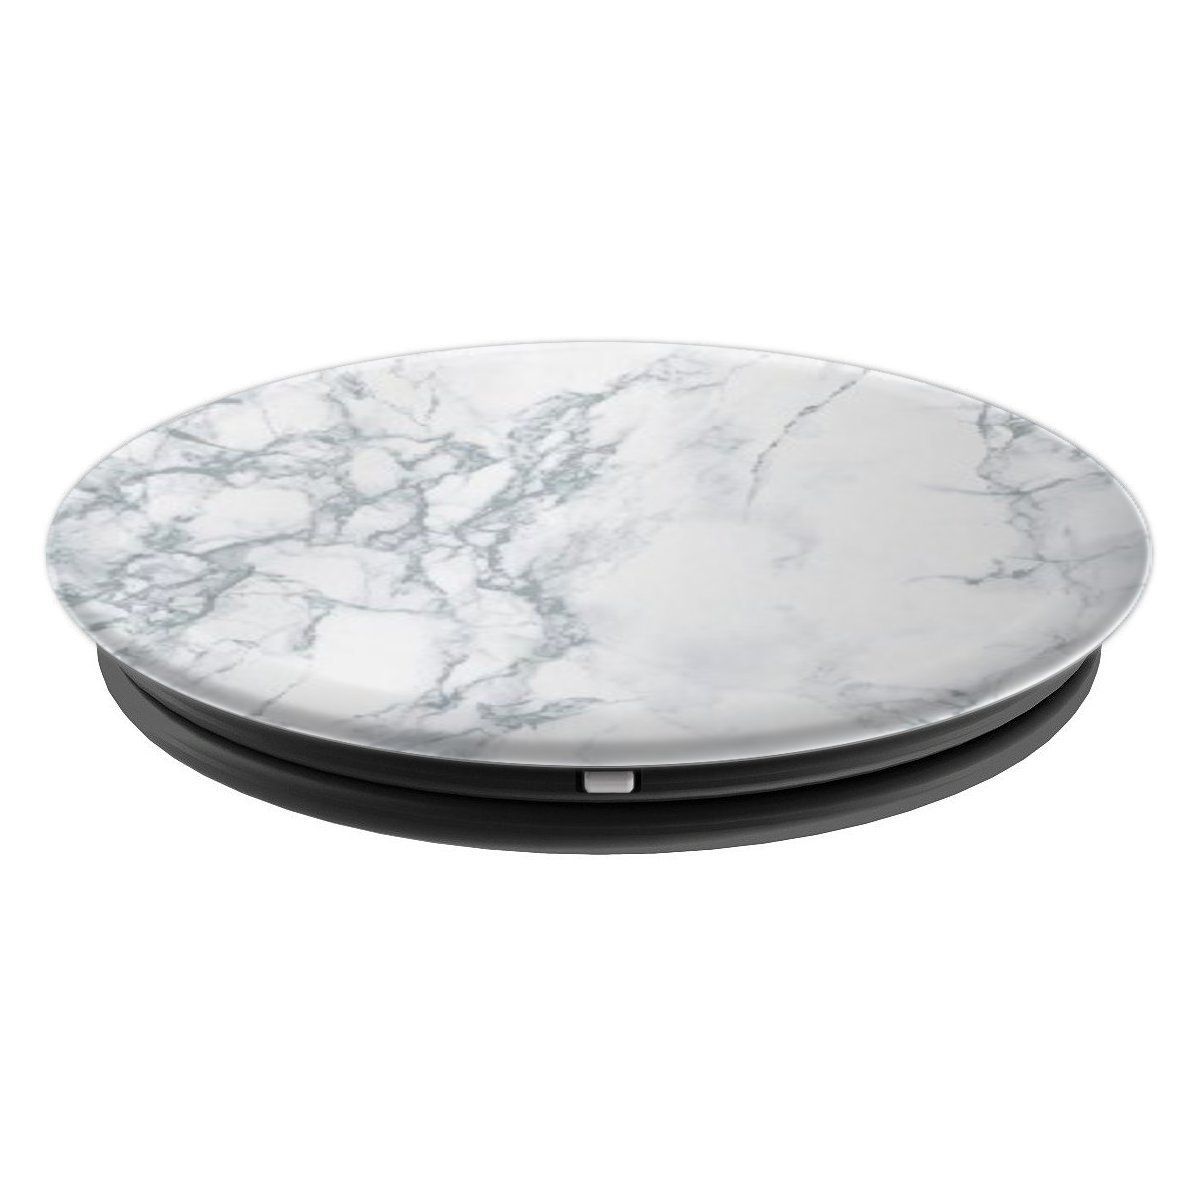 Simply Marble PopSocket - Mobile Phone Accessory - PopSockets Grip and Stand for Phones and Tablets by Unique PopSockets (Image #2)